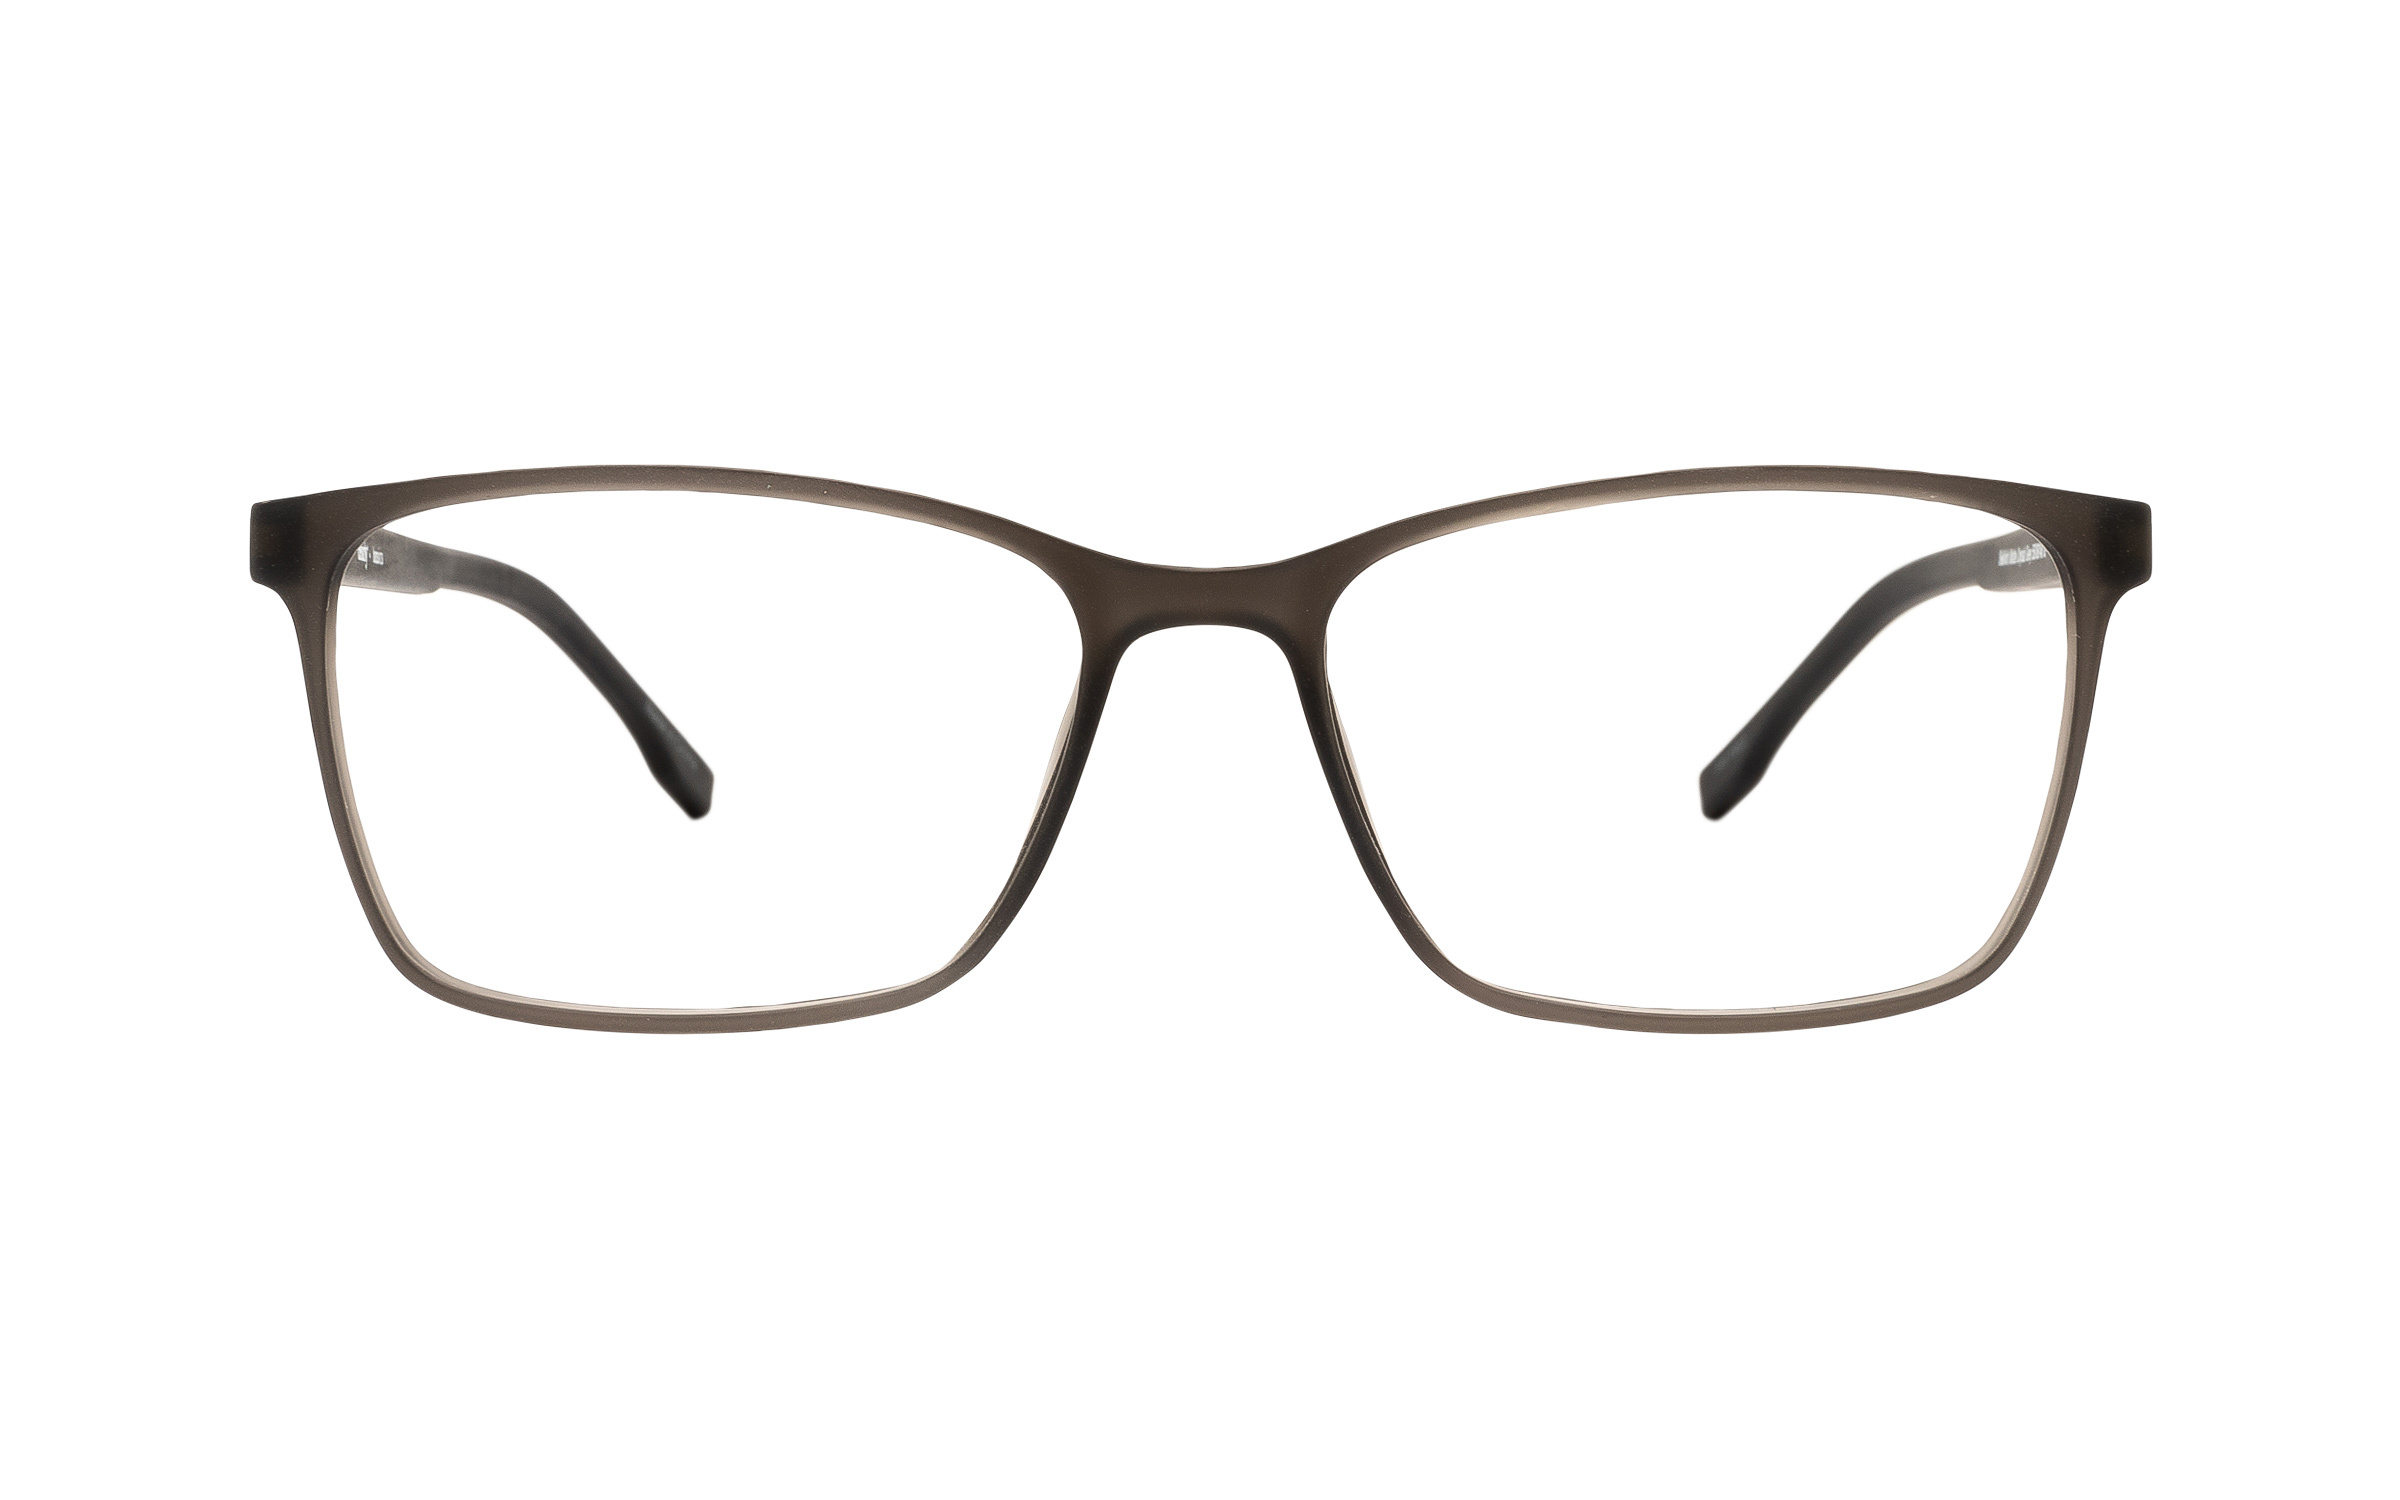 Clearly Basics Selkirk CLS039 C01 (55) Eyeglasses and Frame in Matte Crystal Grey - Online Coastal